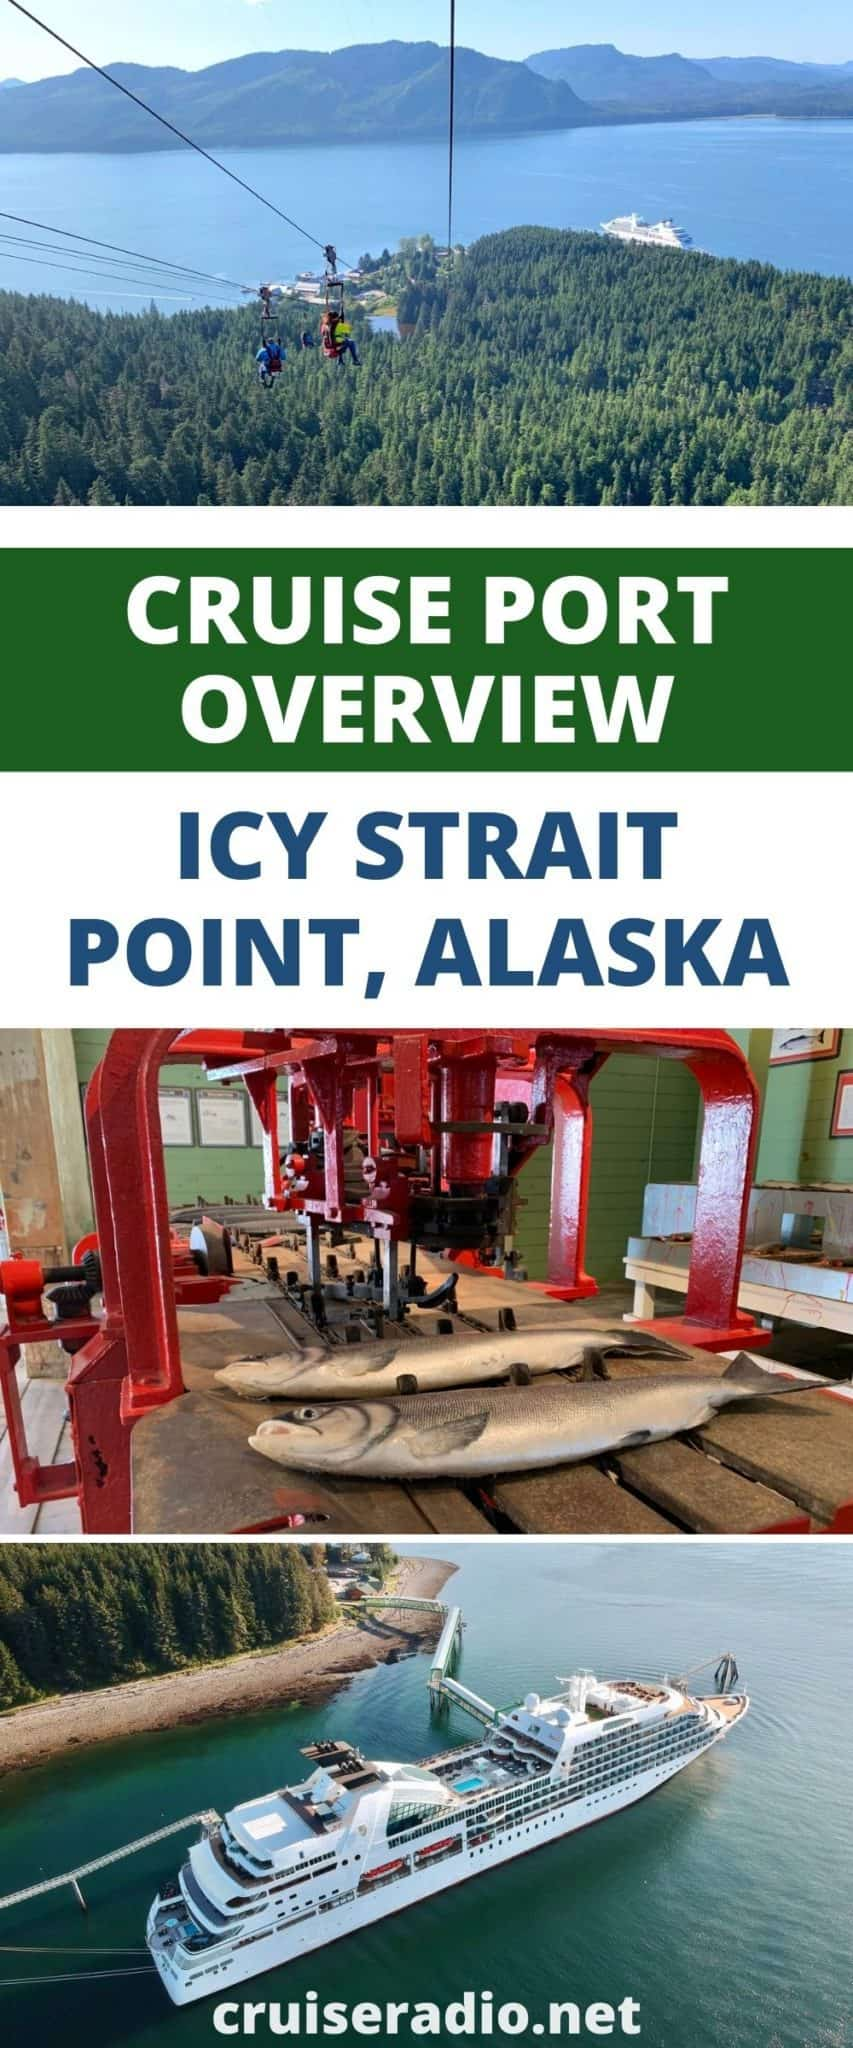 cruise port overview: icy strait point, alaska